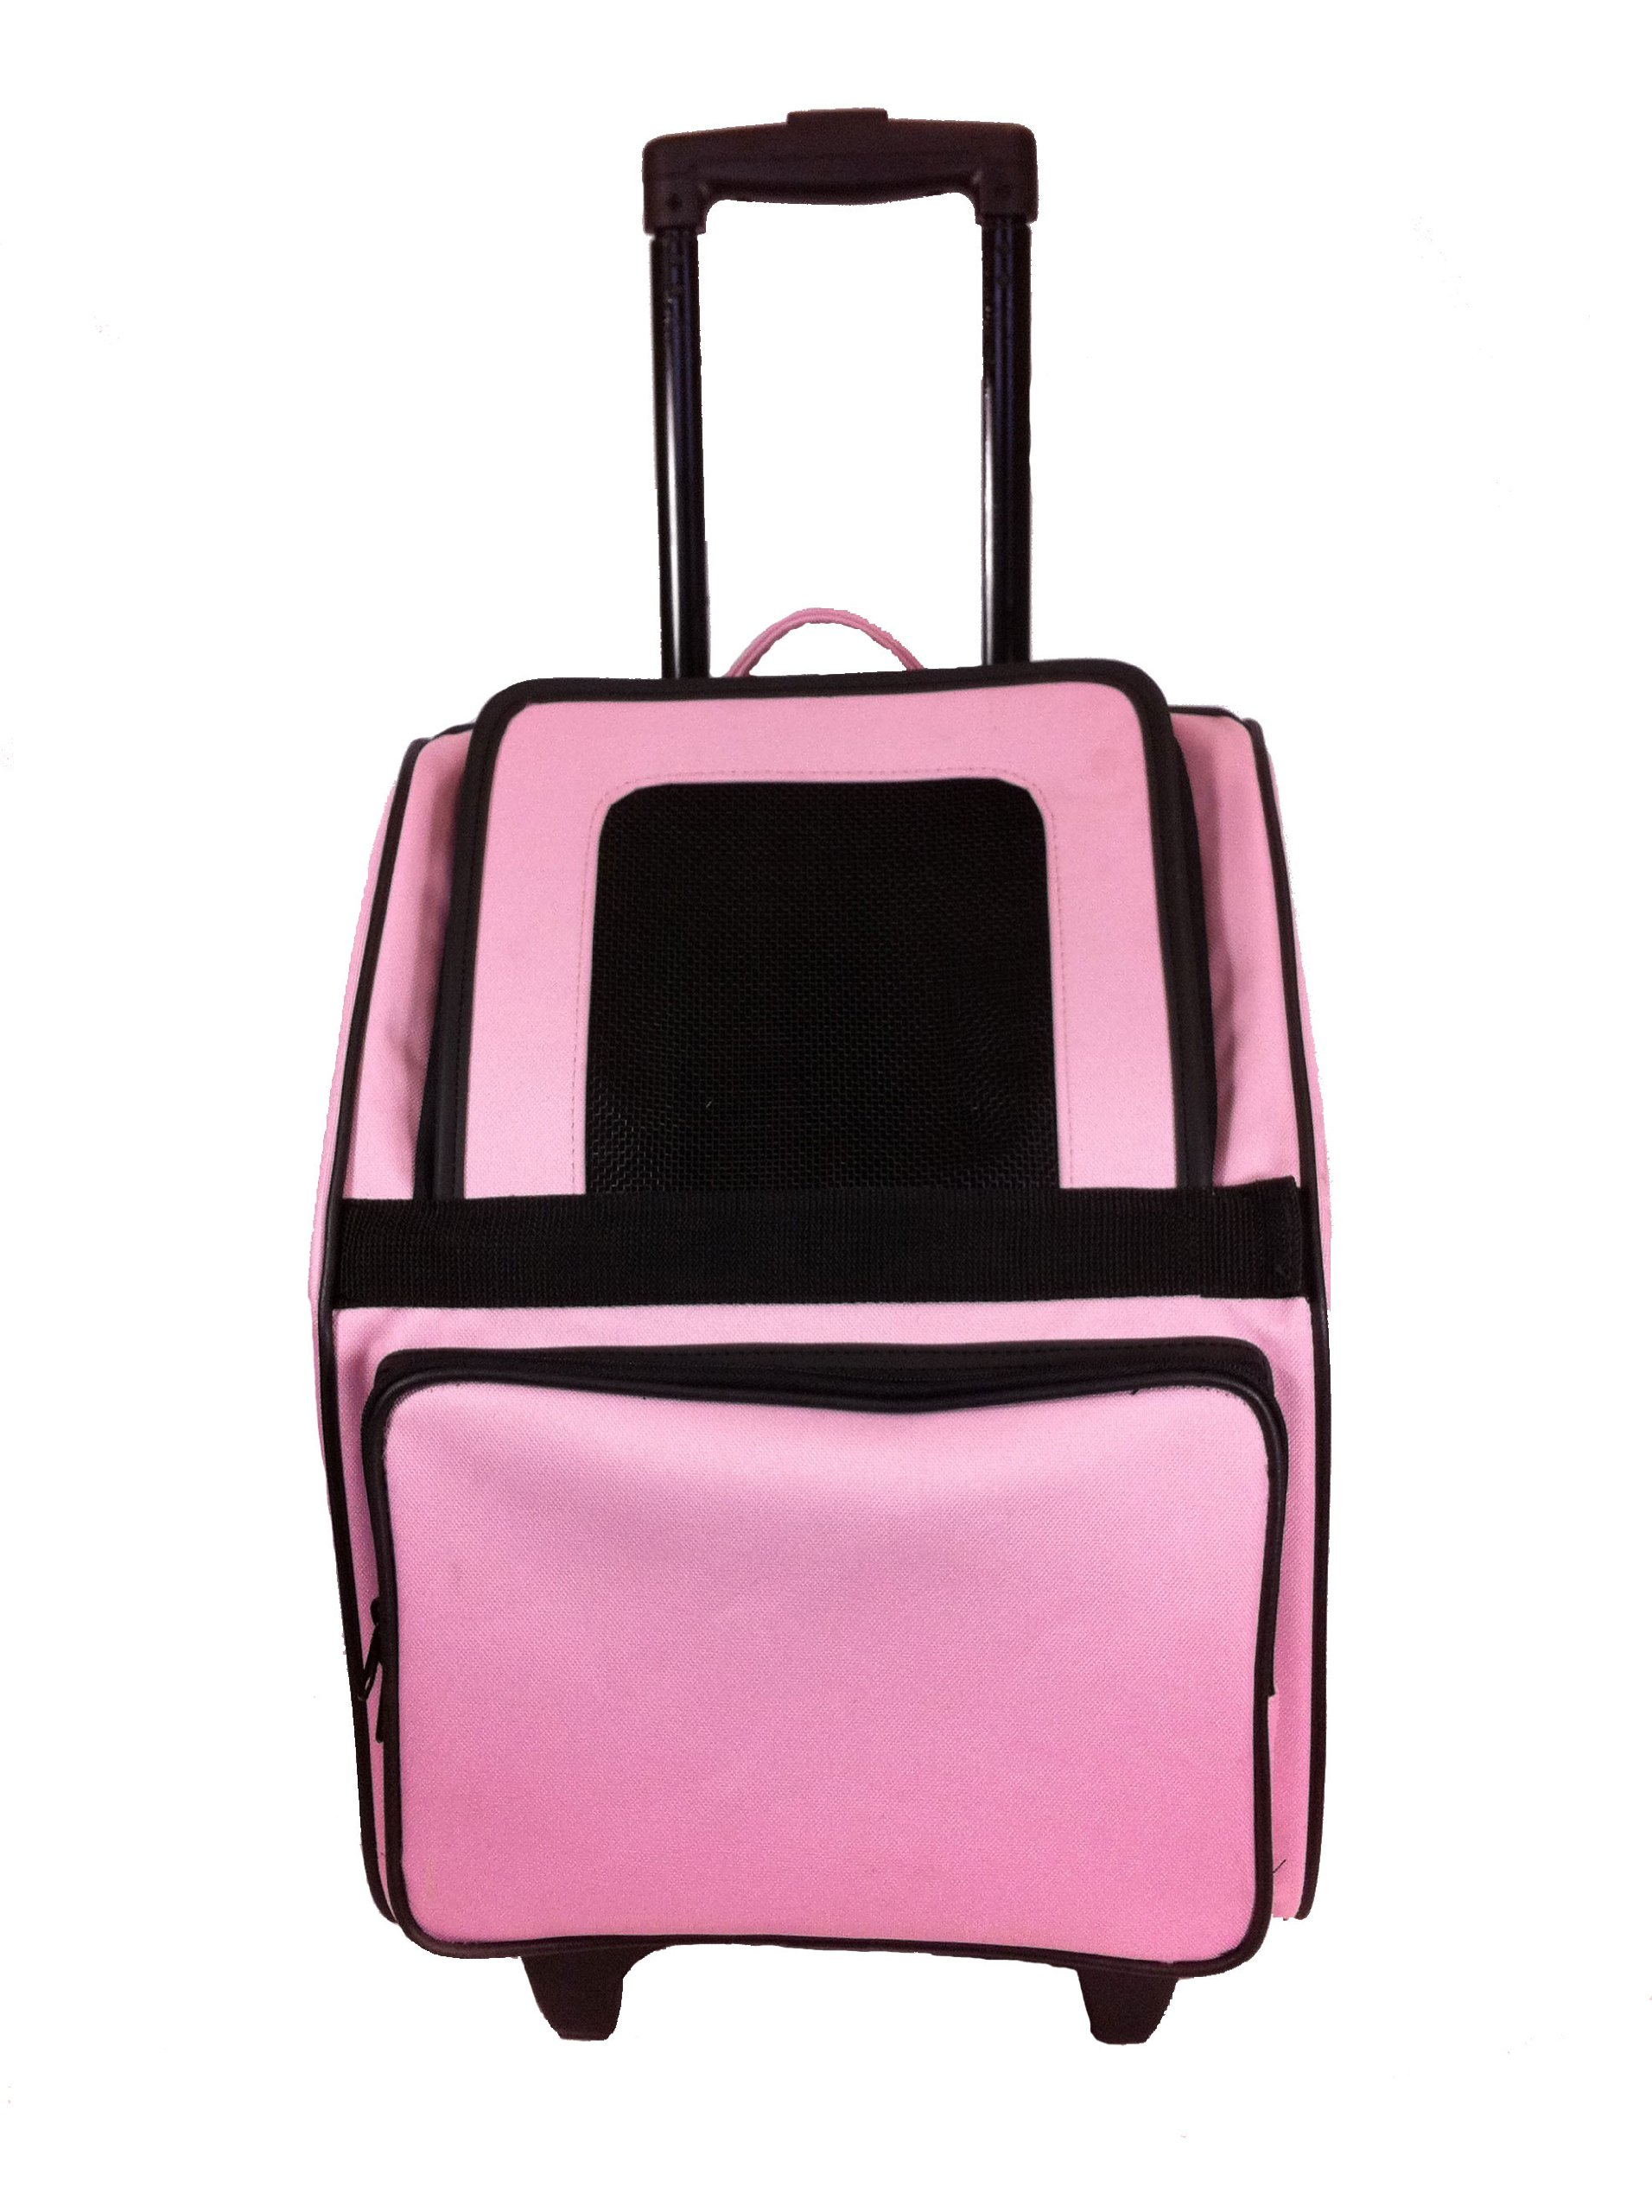 Petote Rio Pet Carrier Bag on Wheels, Black Trim/Light Pink by Petote